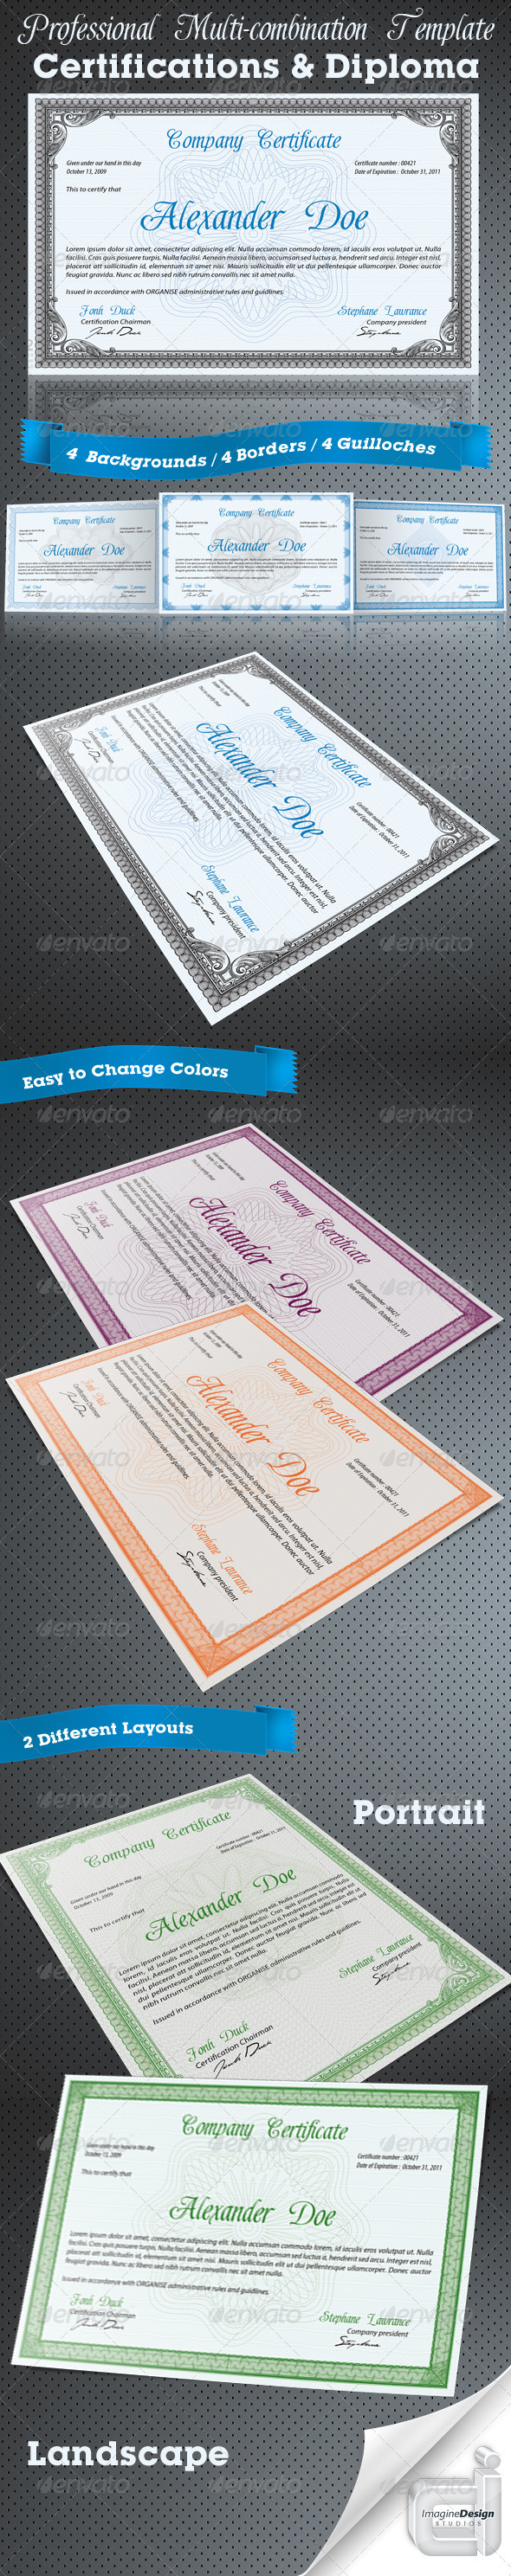 Get the Print ready Professional Certificate or Diploma Templates